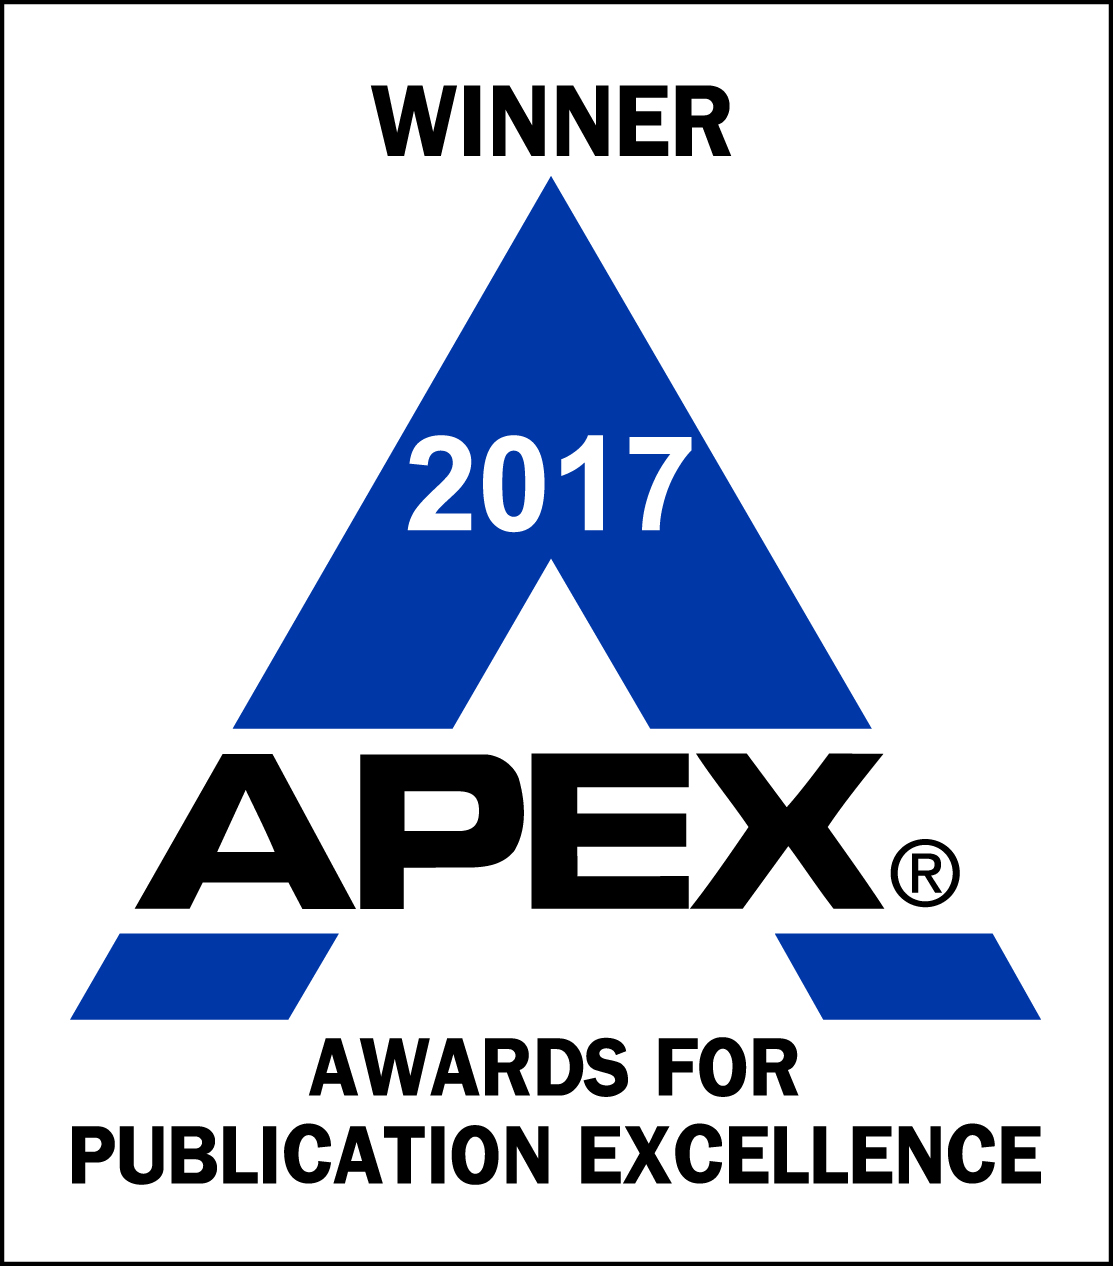 Winner 2017 APEX ® Awards for Publication Excellence